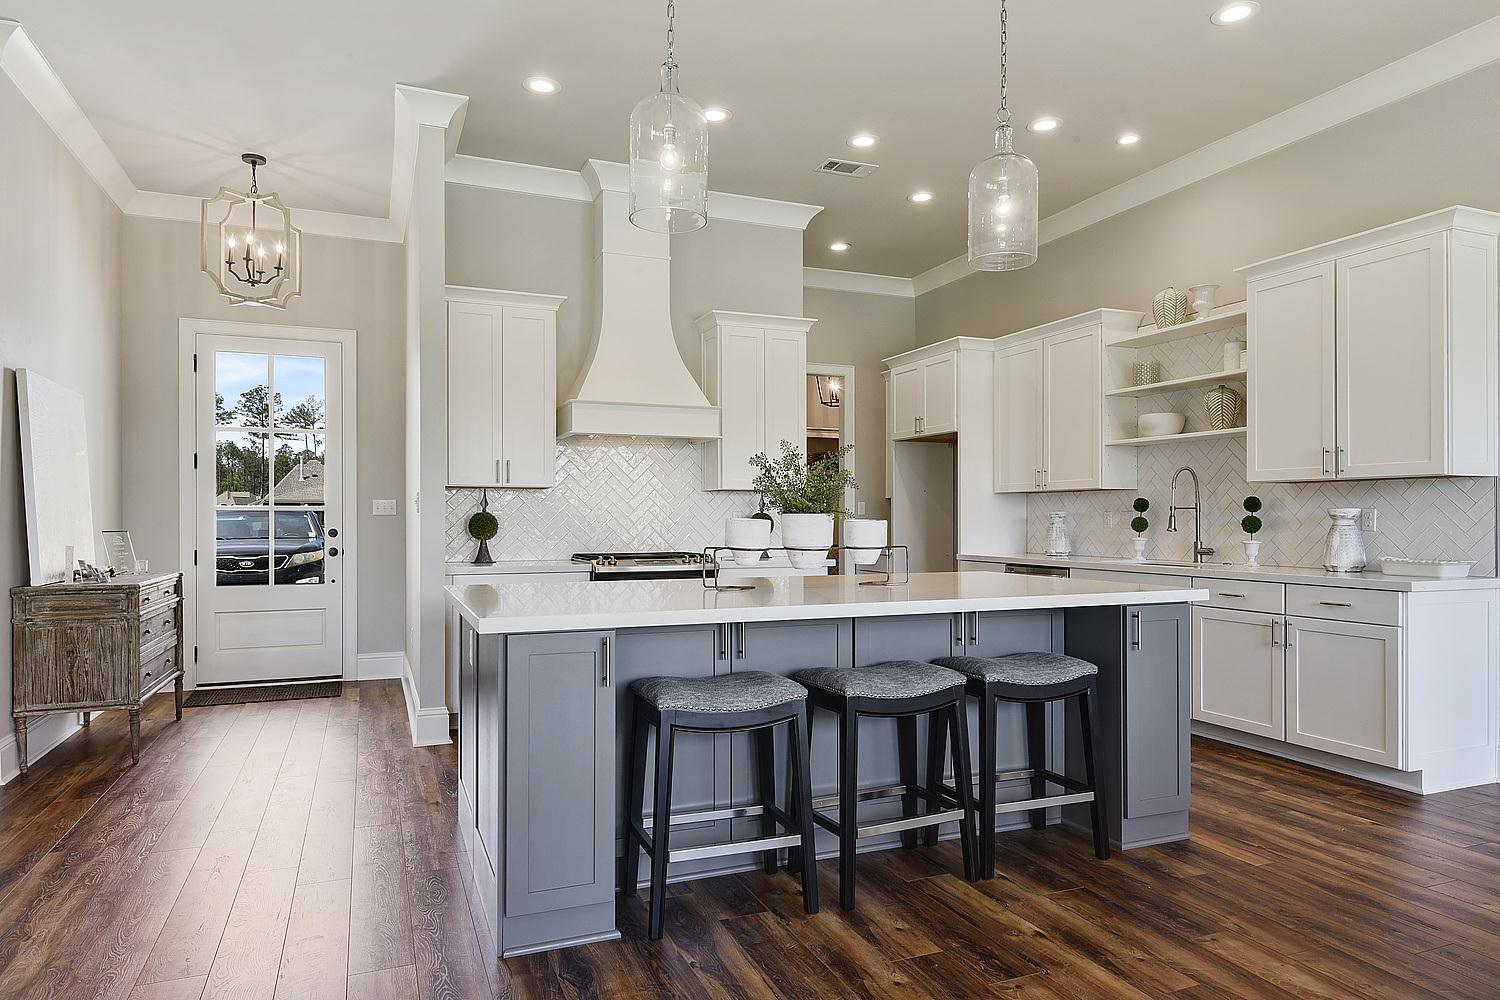 Kitchen featured in the Madison By Highland Homes in New Orleans, LA